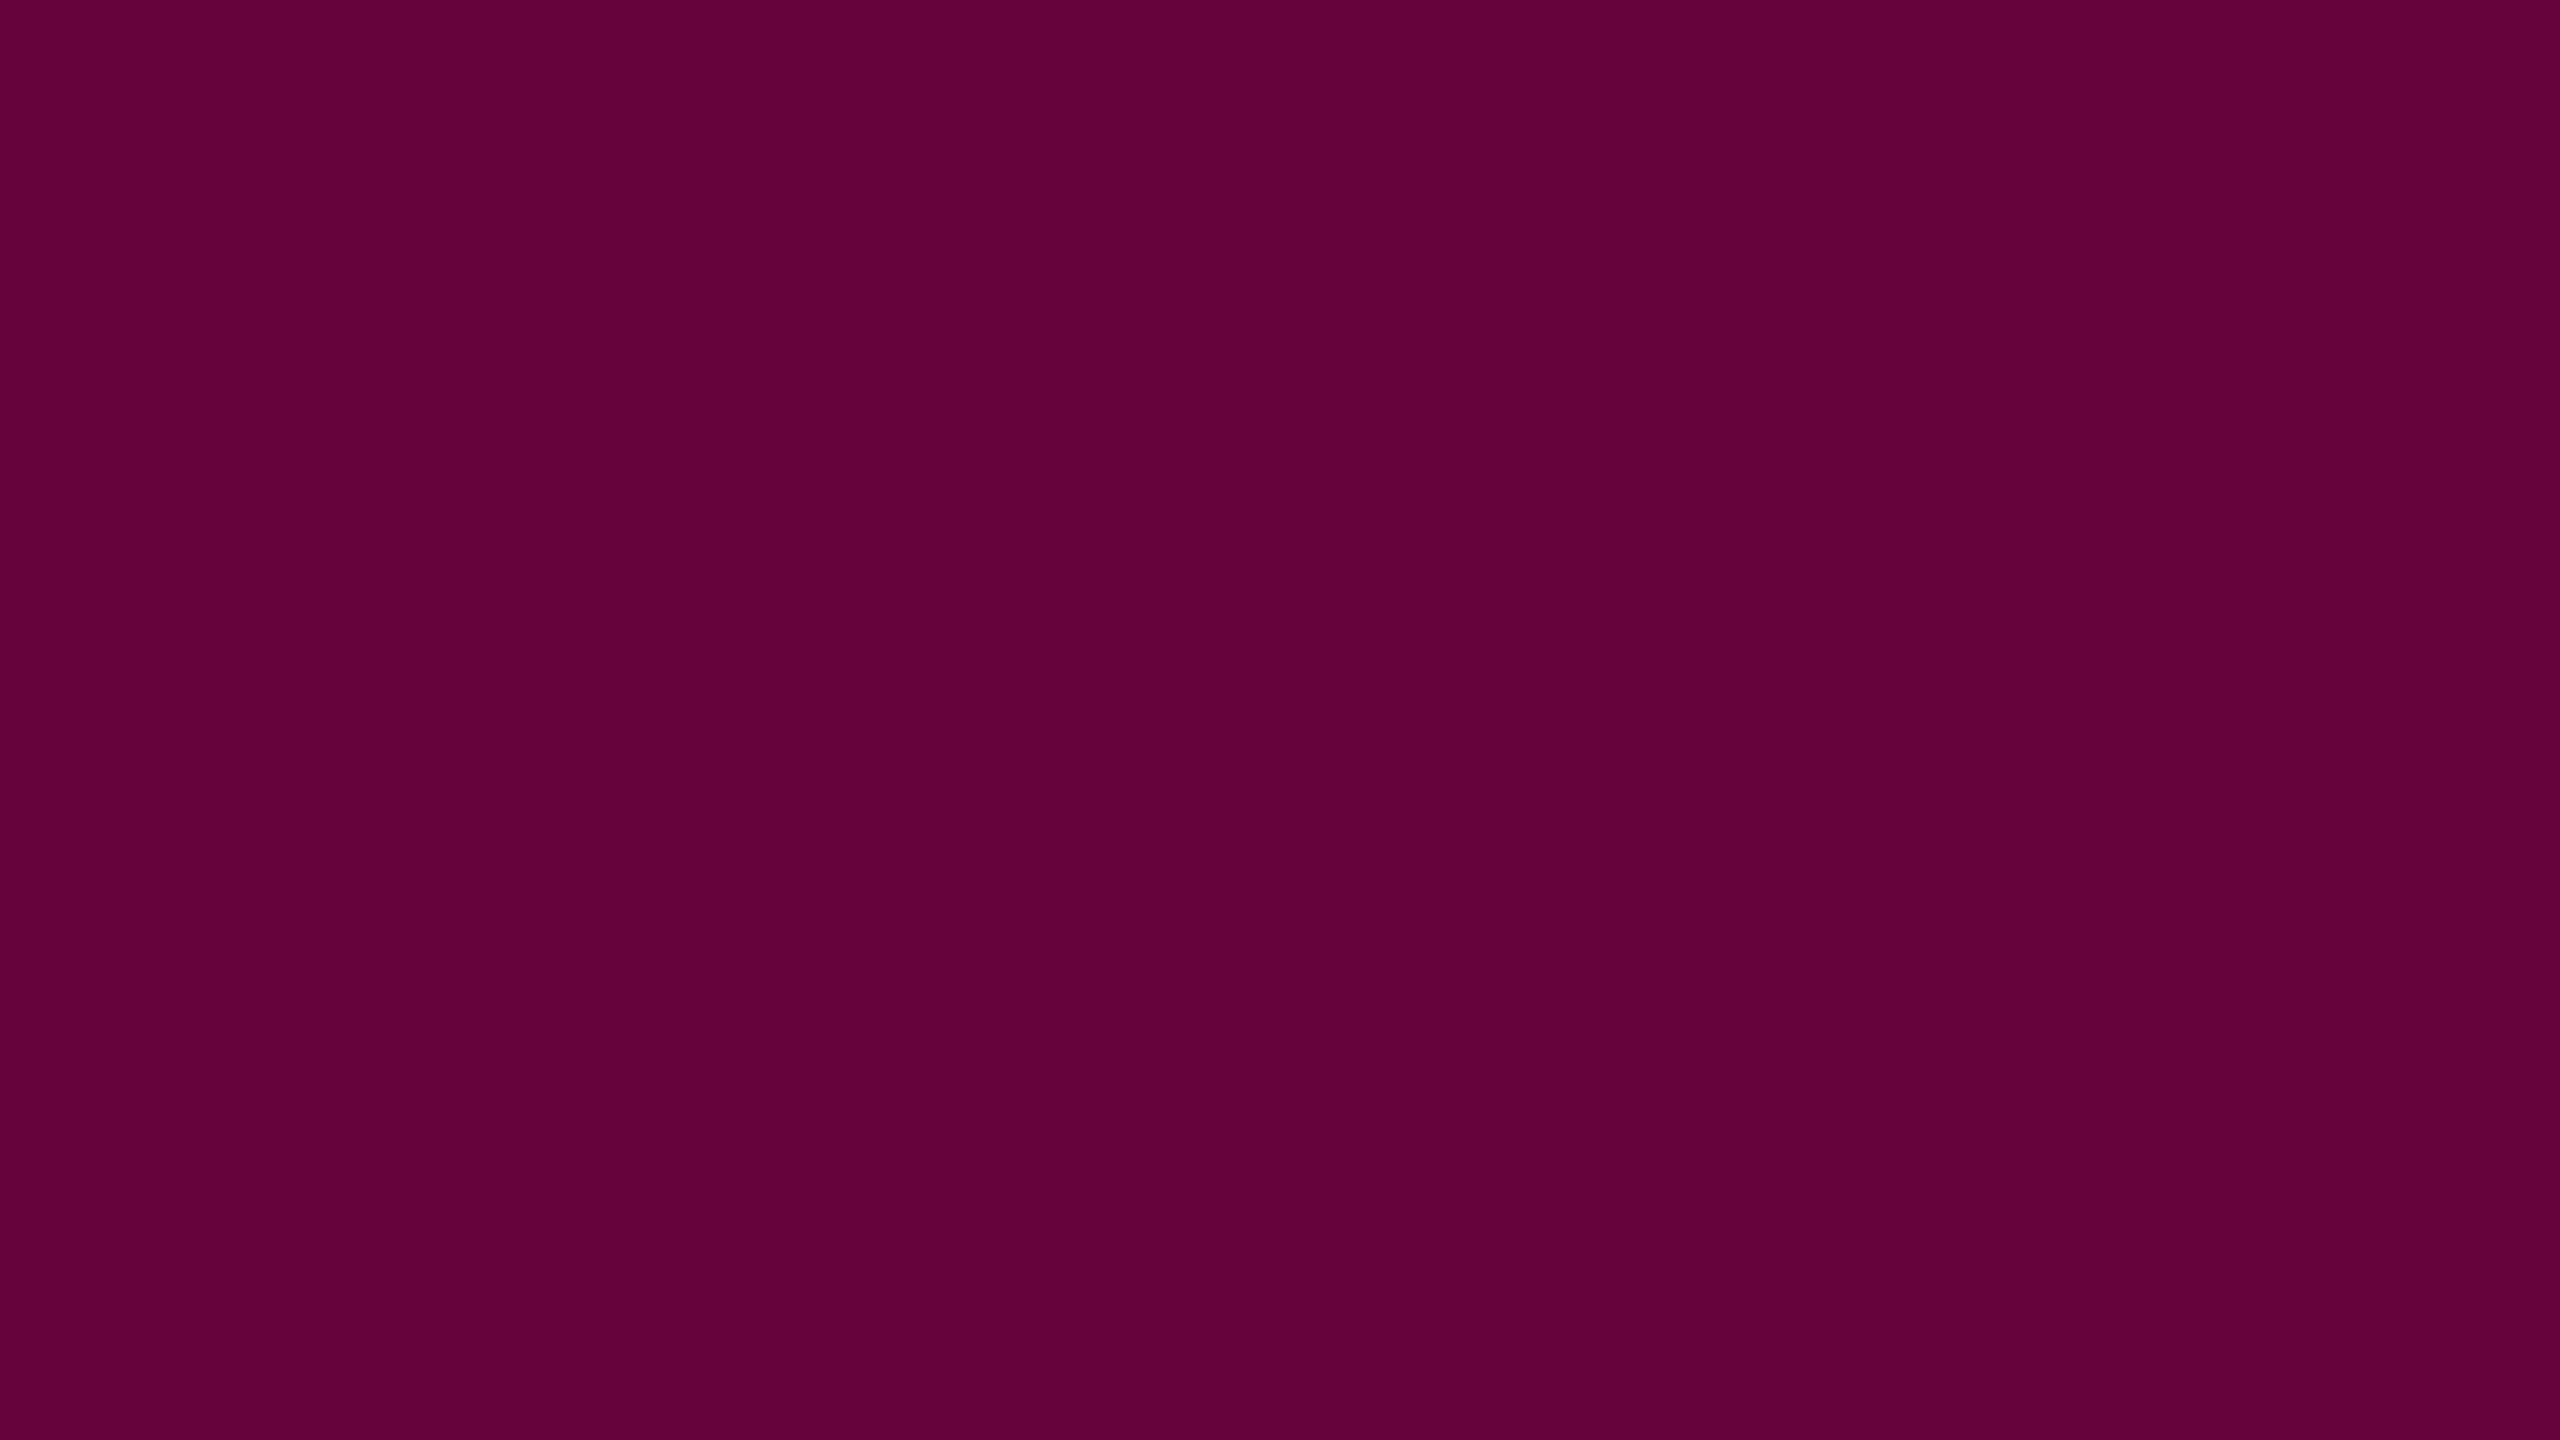 2560x1440 Imperial Purple Solid Color Background